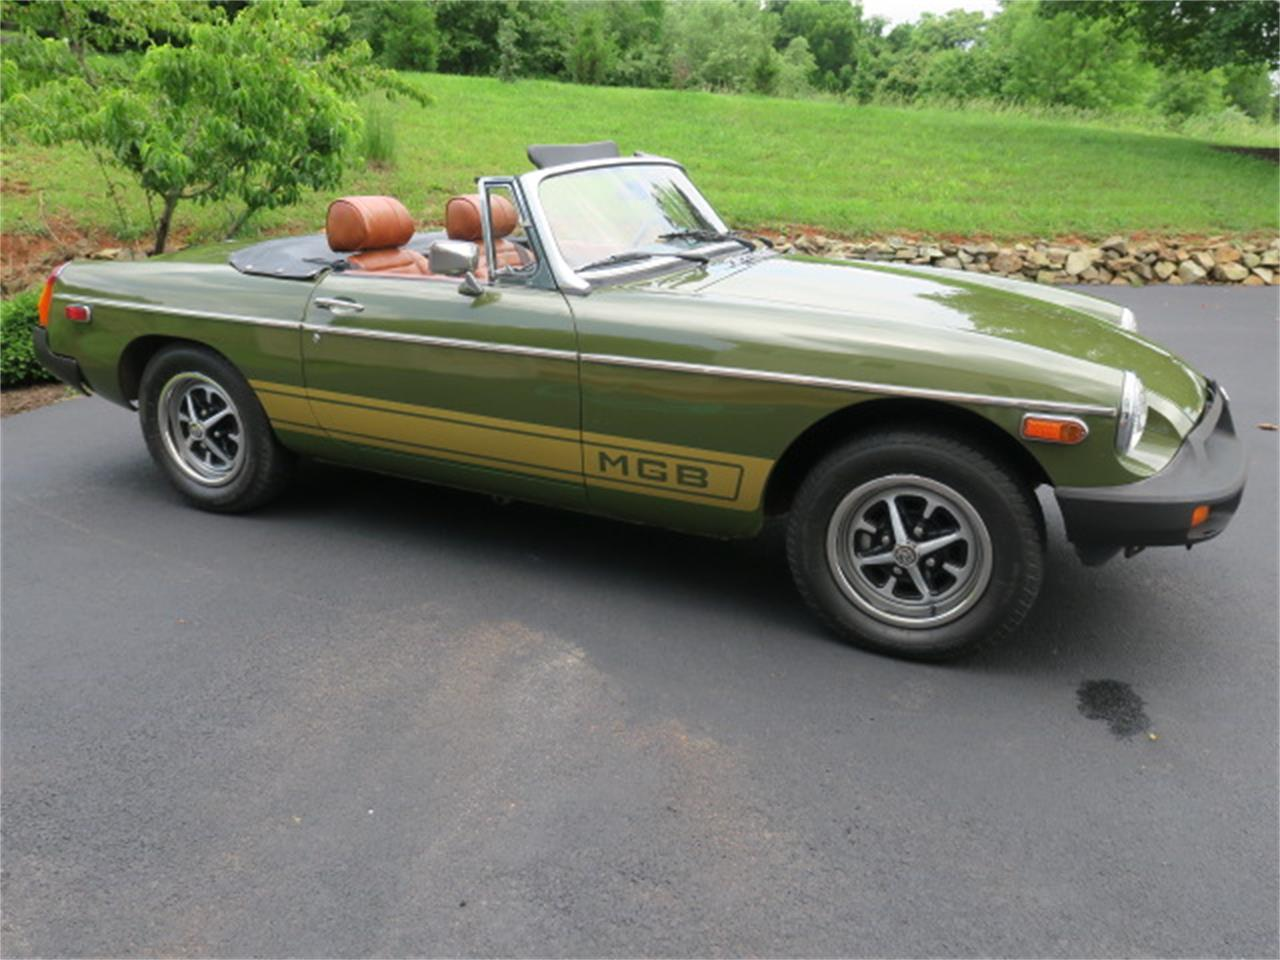 1975 MG MGB for sale in Leesburg, VA